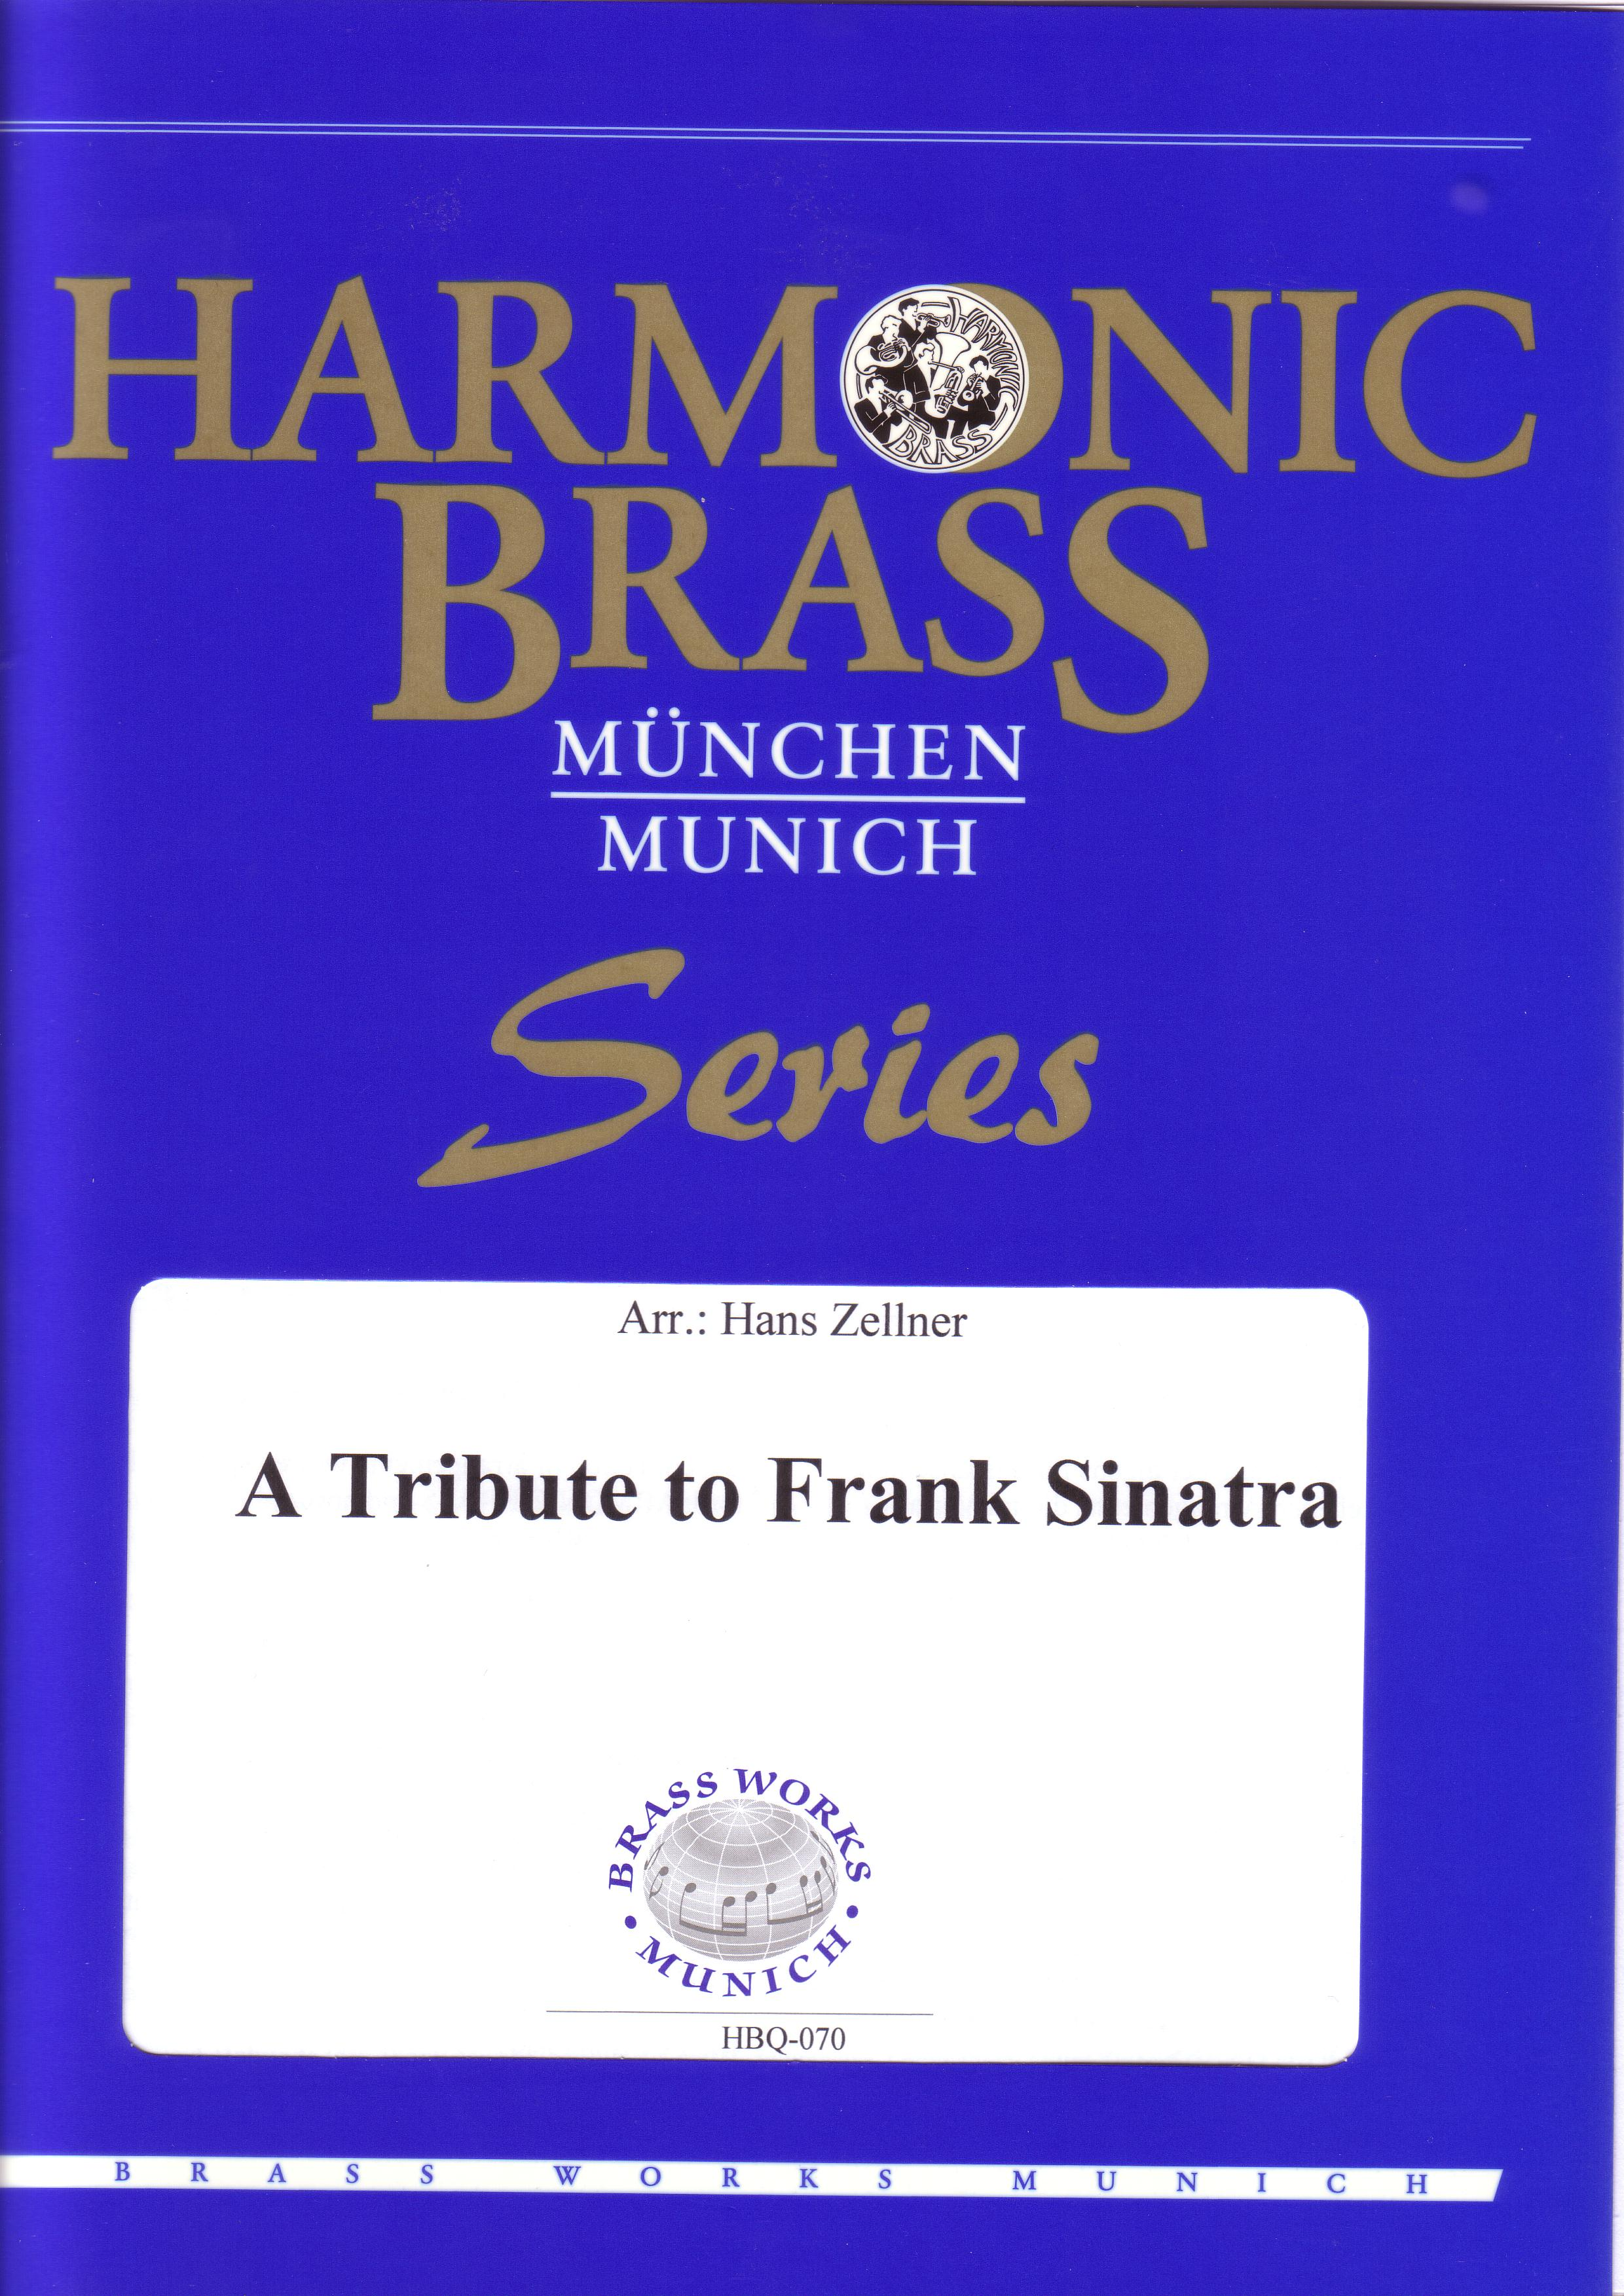 A TRIBUTE TO FRANK SINATRA score & parts